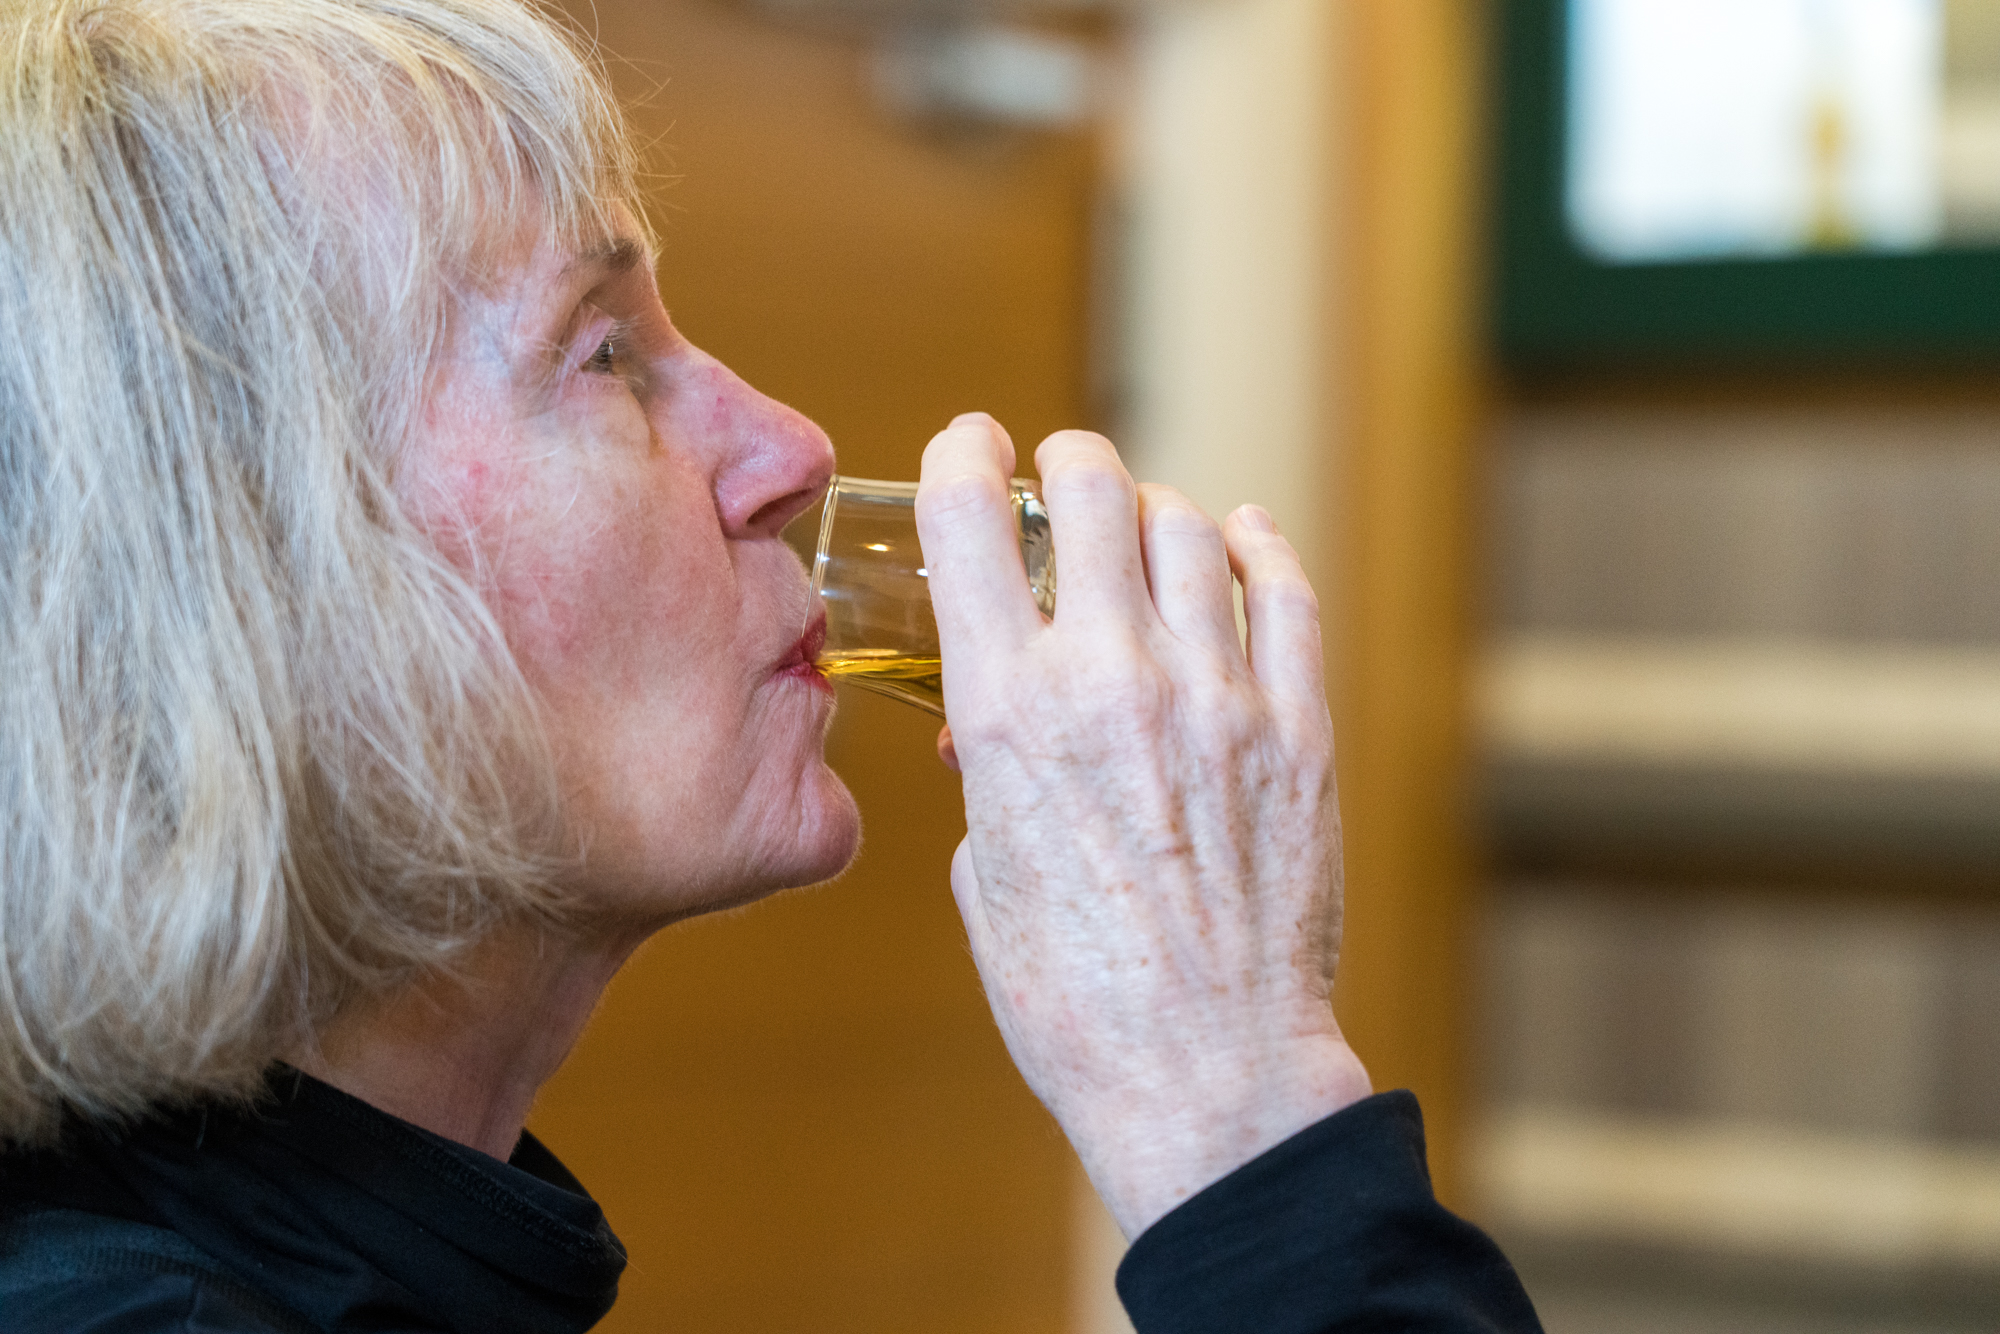 A woman samples Oban Whisky in the distillery tasting room.